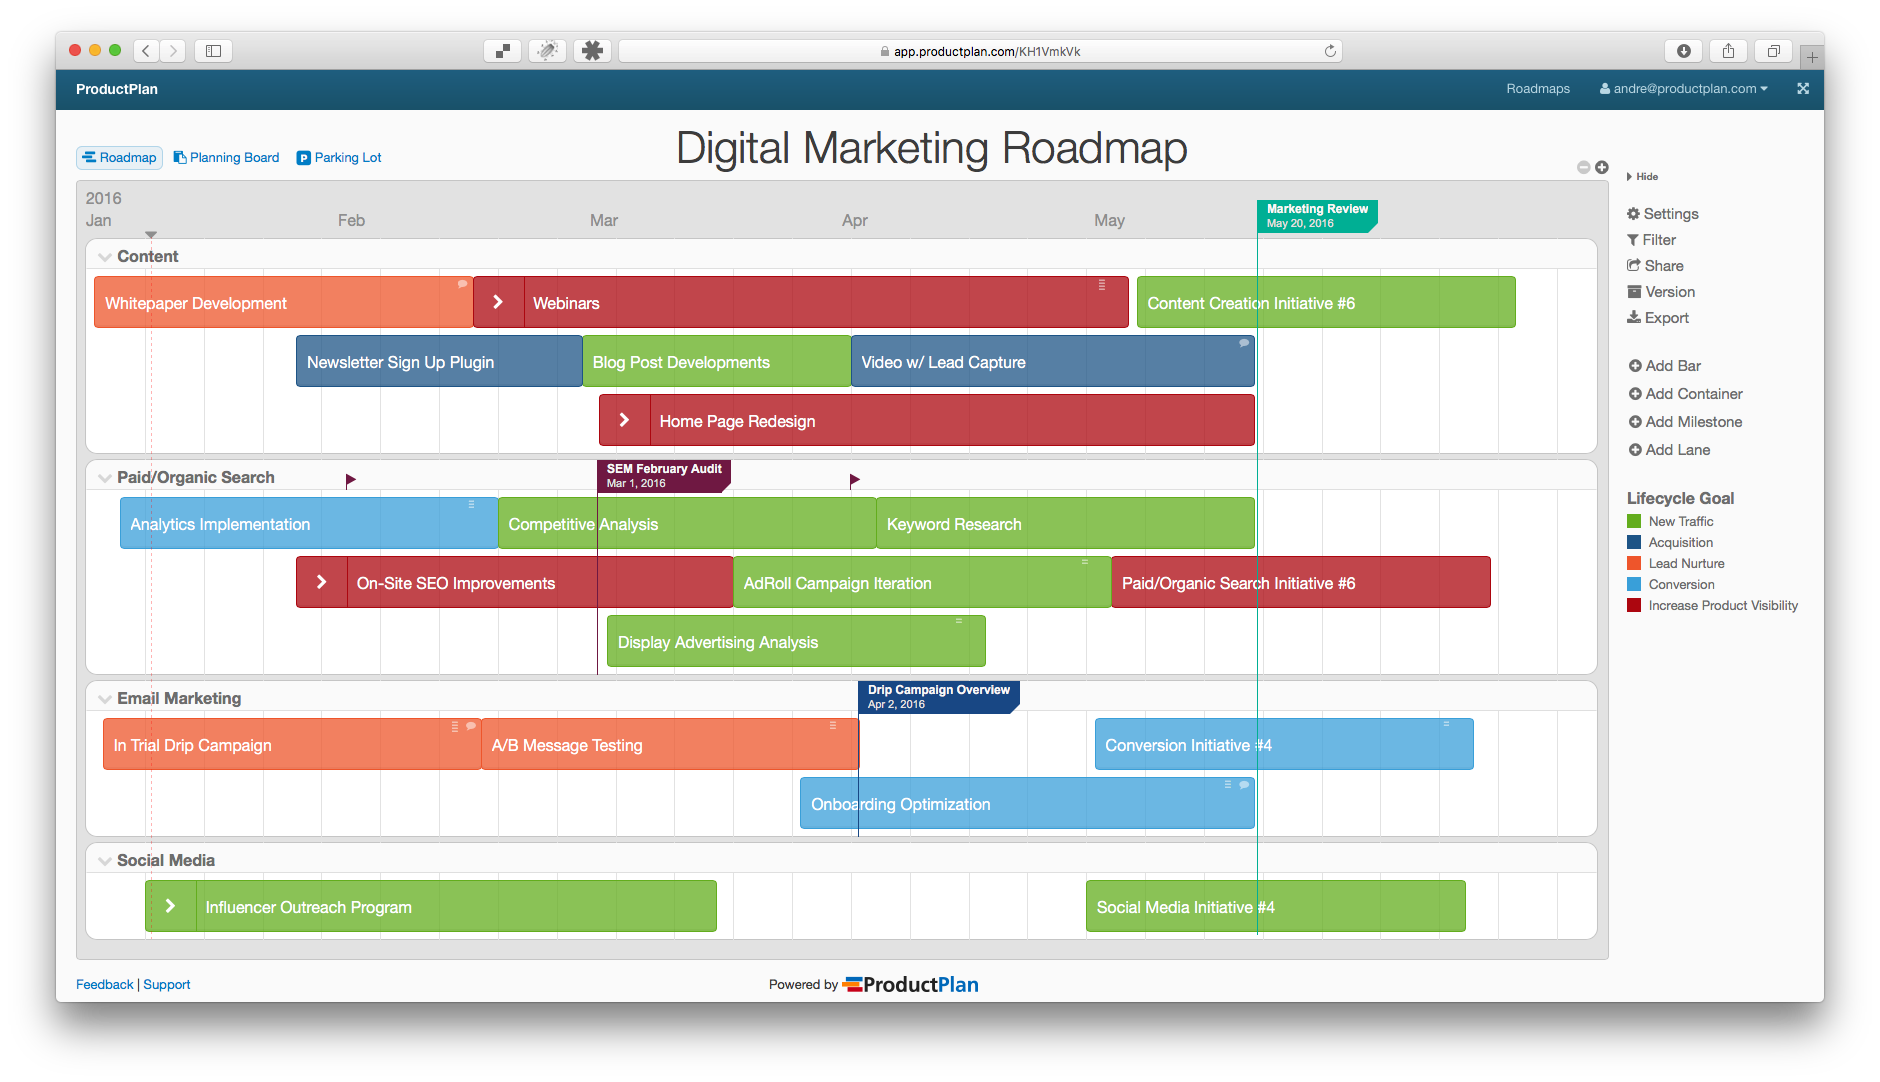 Digital Marketing Roadmap Template  Visualizing Data